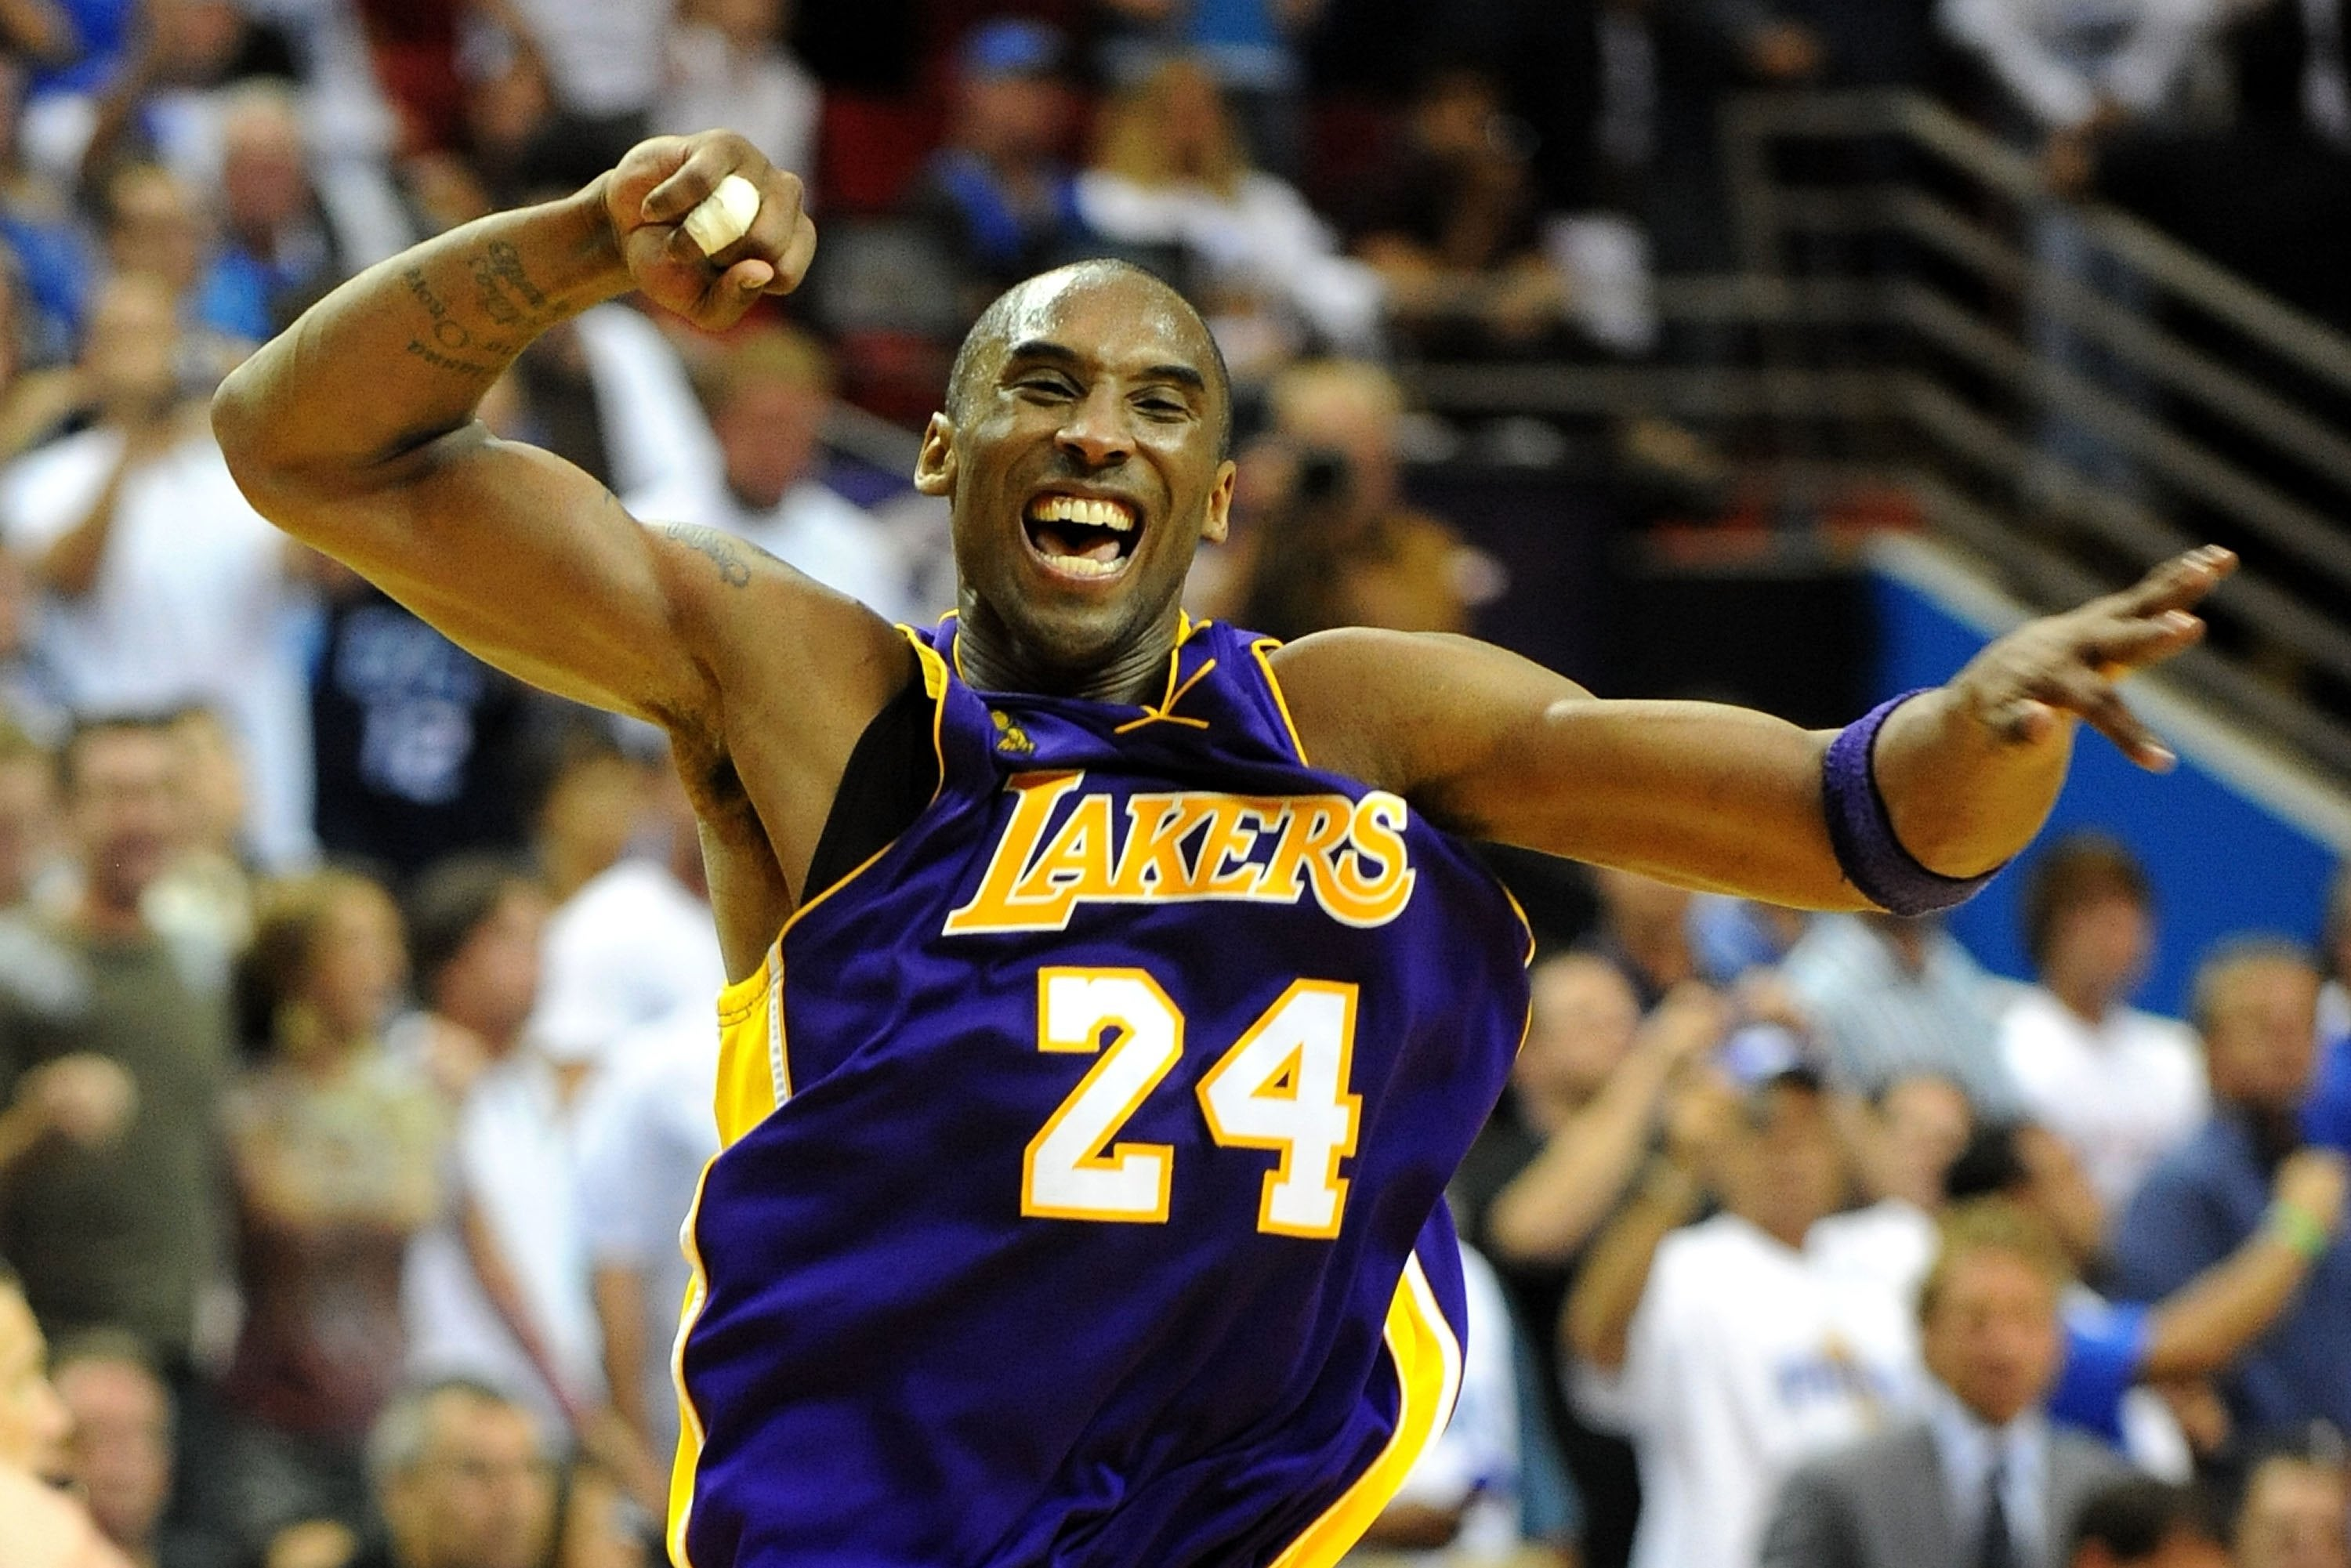 Remembering Kobe Bryant: The Life of the NBA Star in Pictures